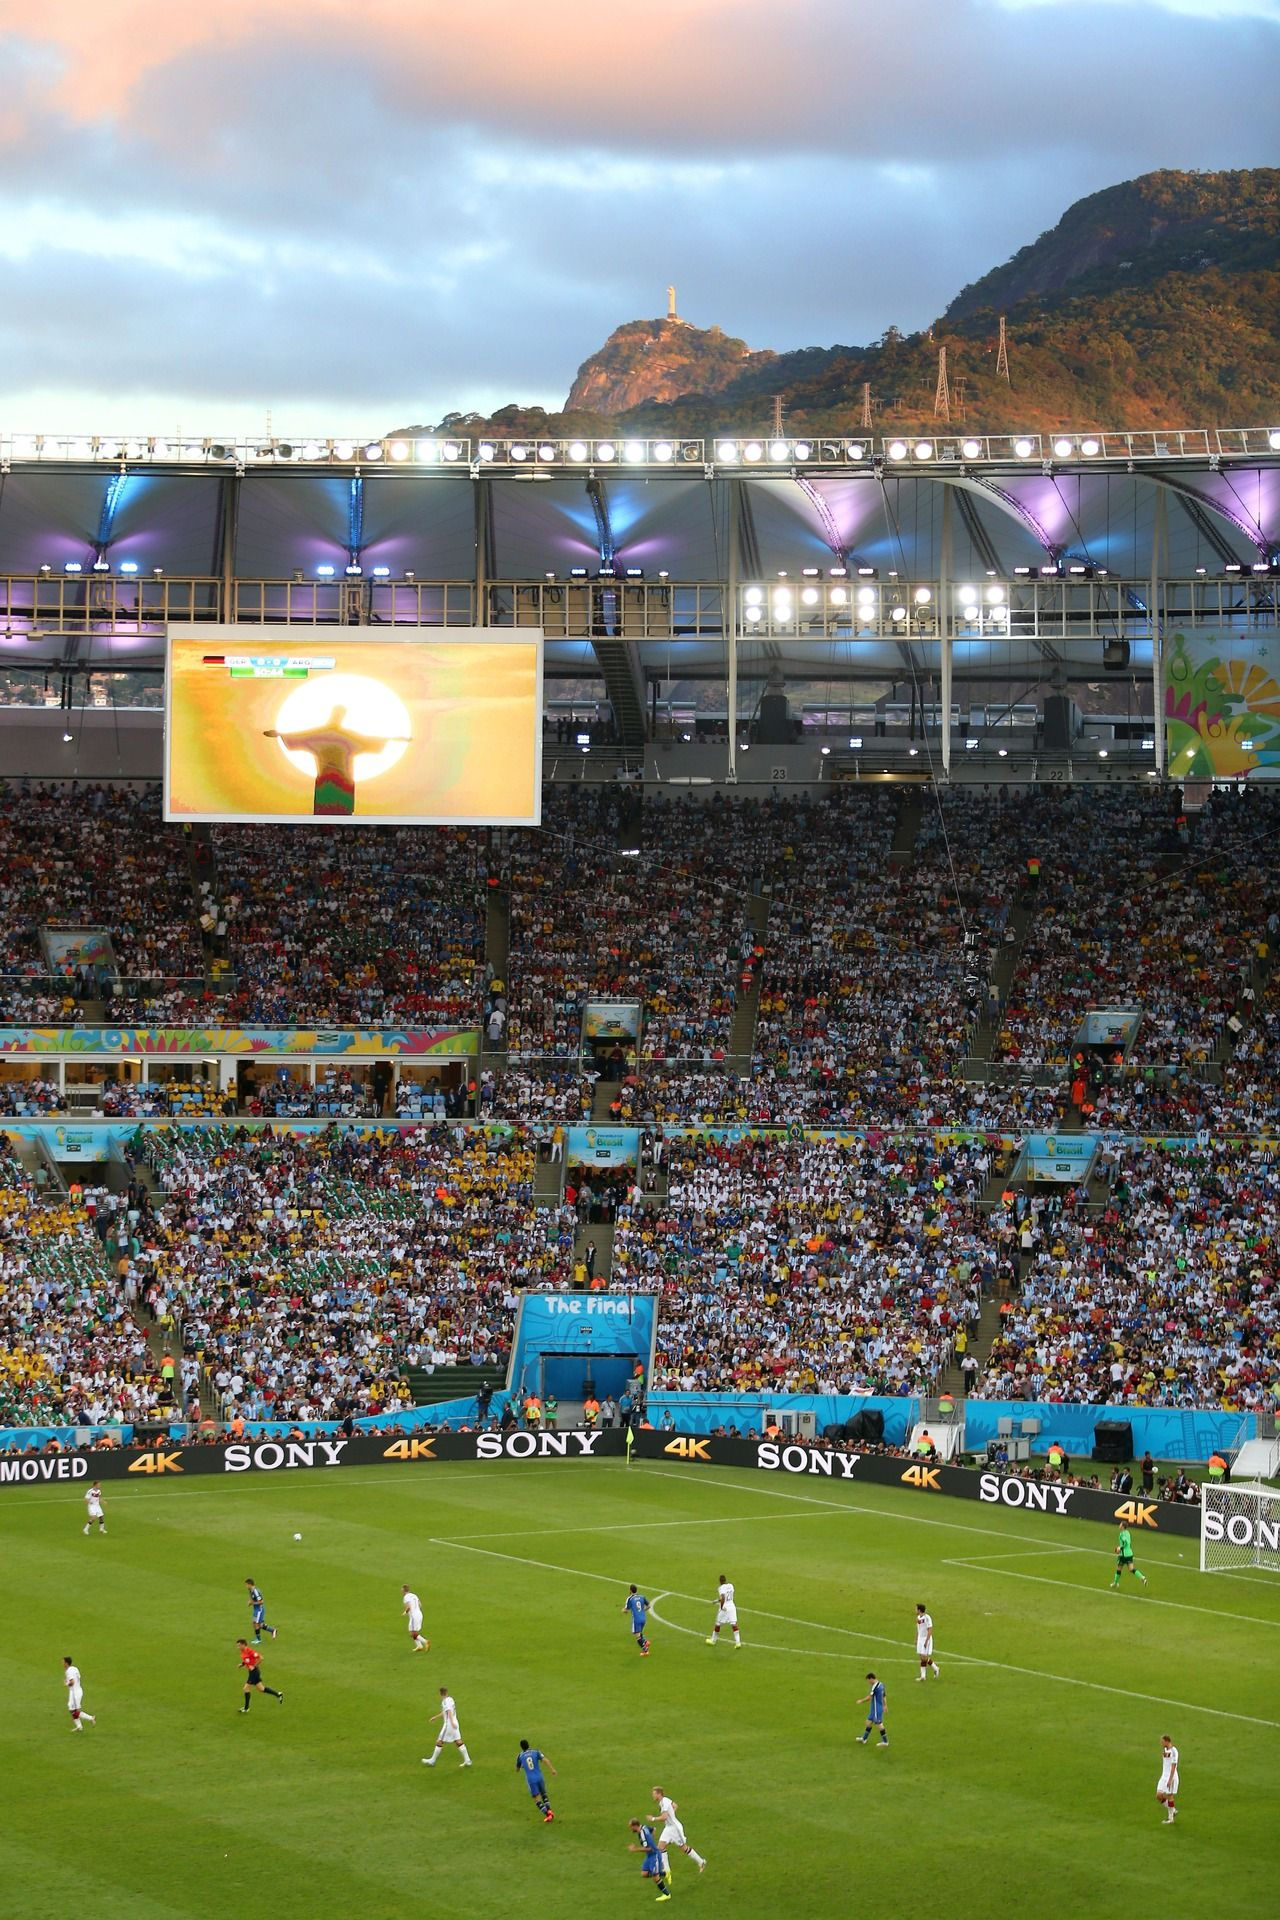 World Cup Final Argentina Vs Germany July 13 2014 Wc2014 Worldcup Worldcup2014 Olympic Venues Football Brazil Fifa World Cup